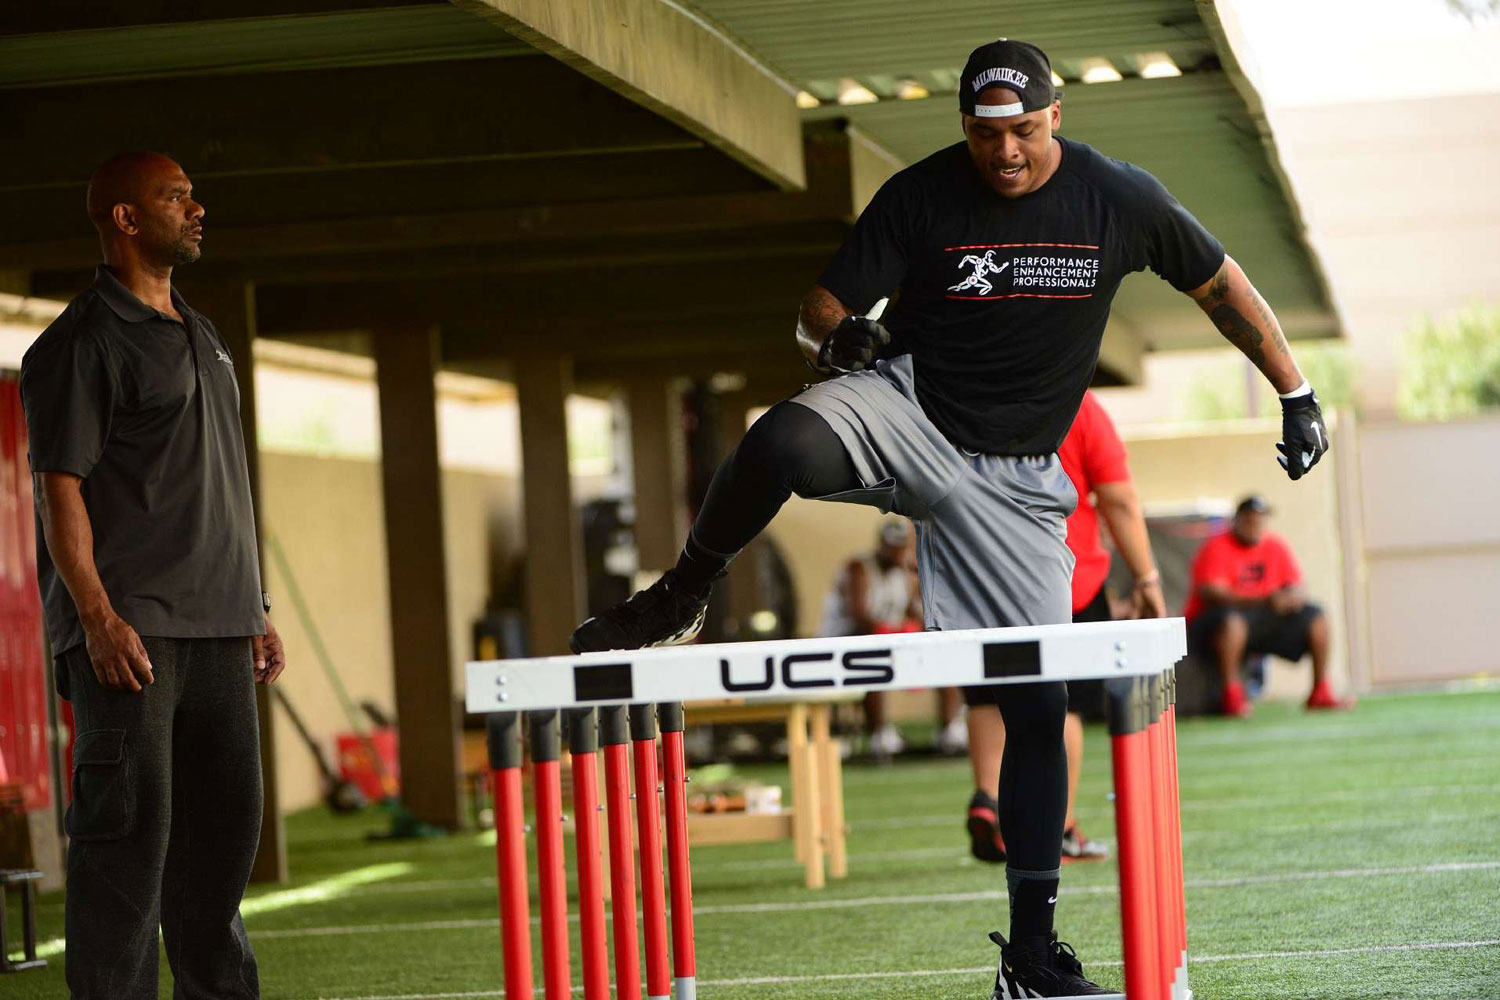 Green Bay Packers tight end Jermichael Finley running hurdles at the Performance Enhancement Professionals complex in Scottsdale, AZ in February 2014.